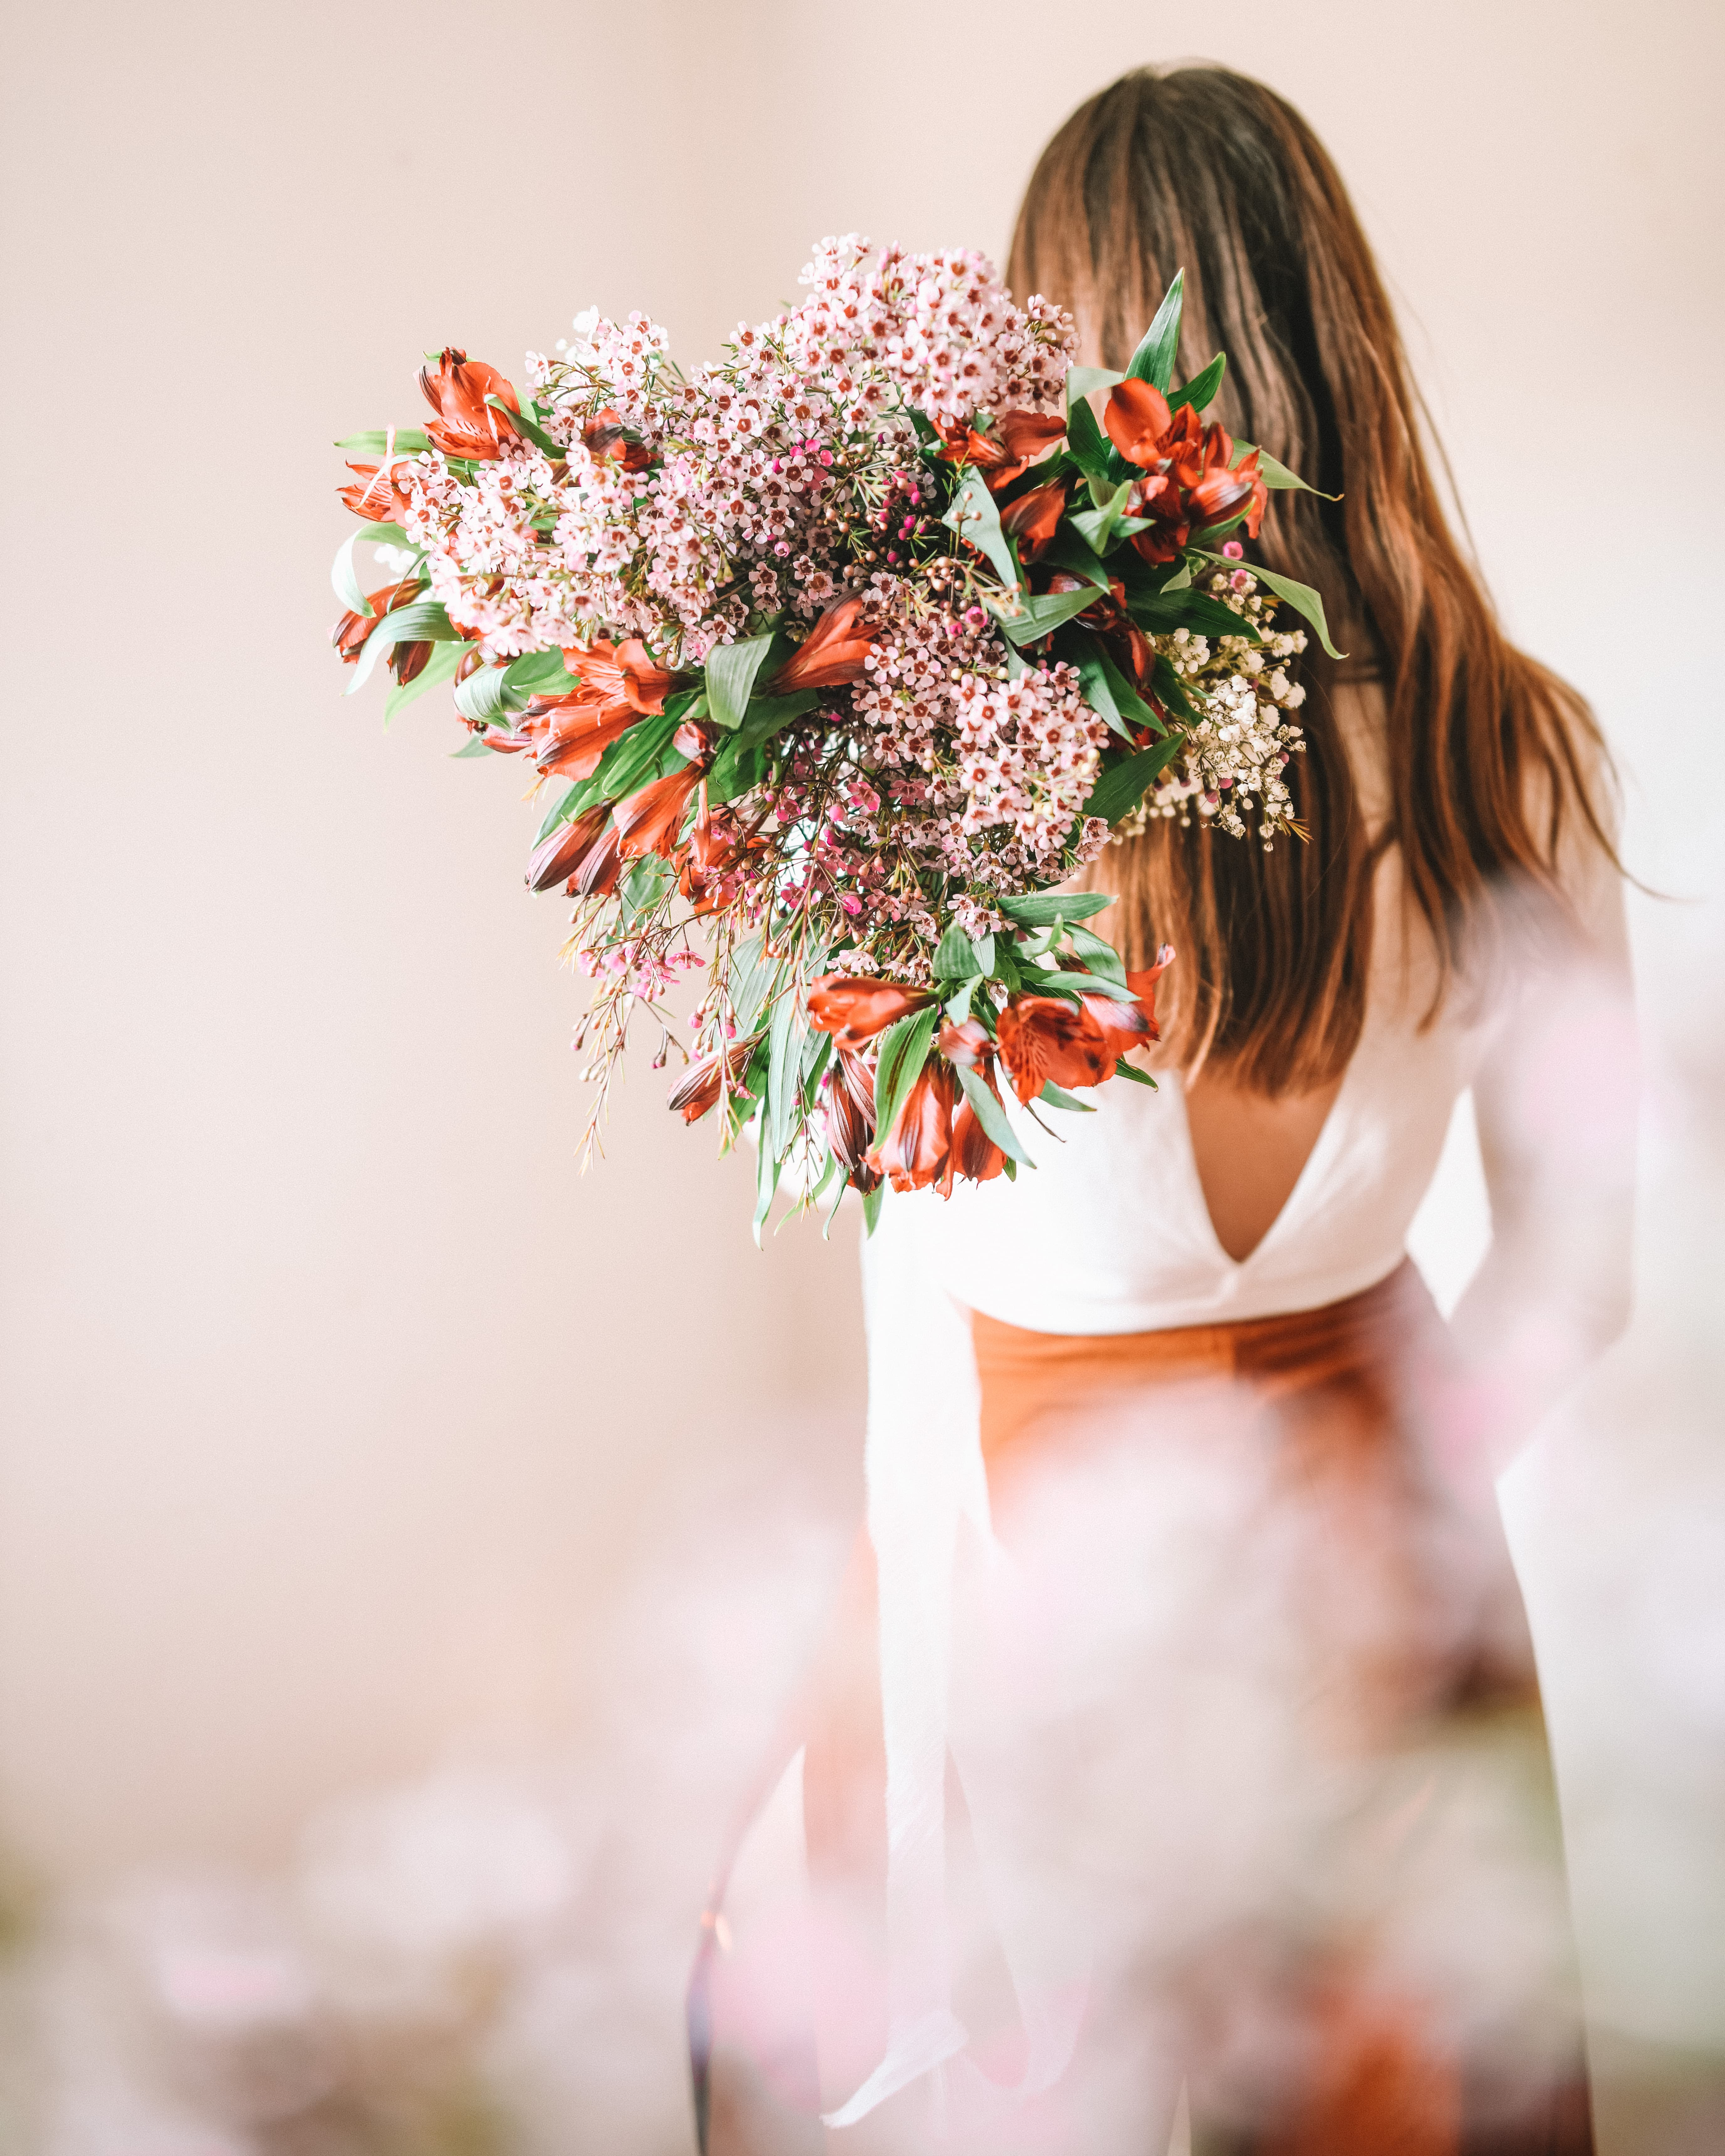 Girl with her back to the camera holding bouquet